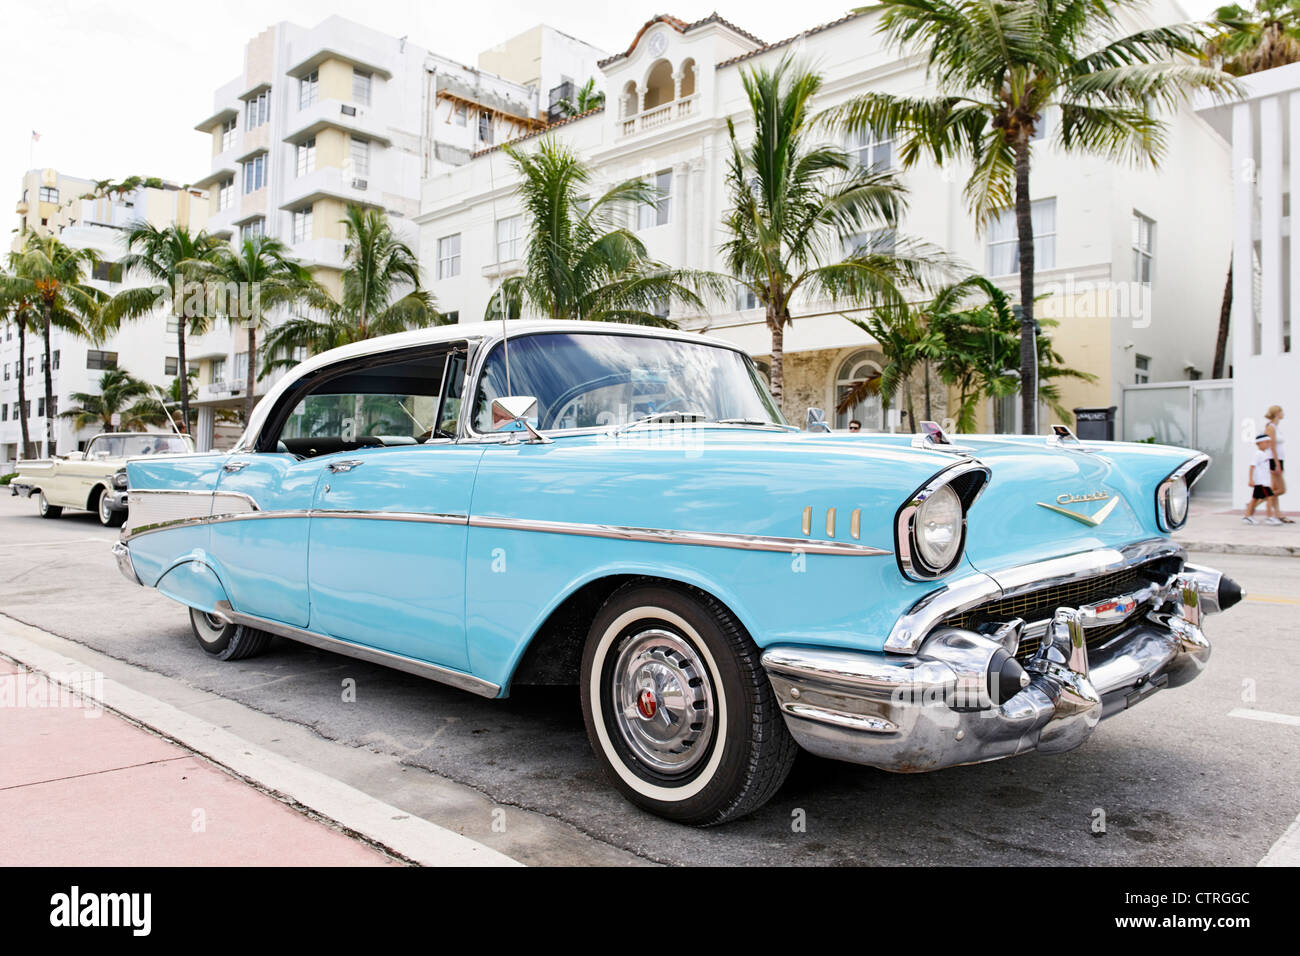 Chevrolet bel air built in 1957 fifties american for American classic usa